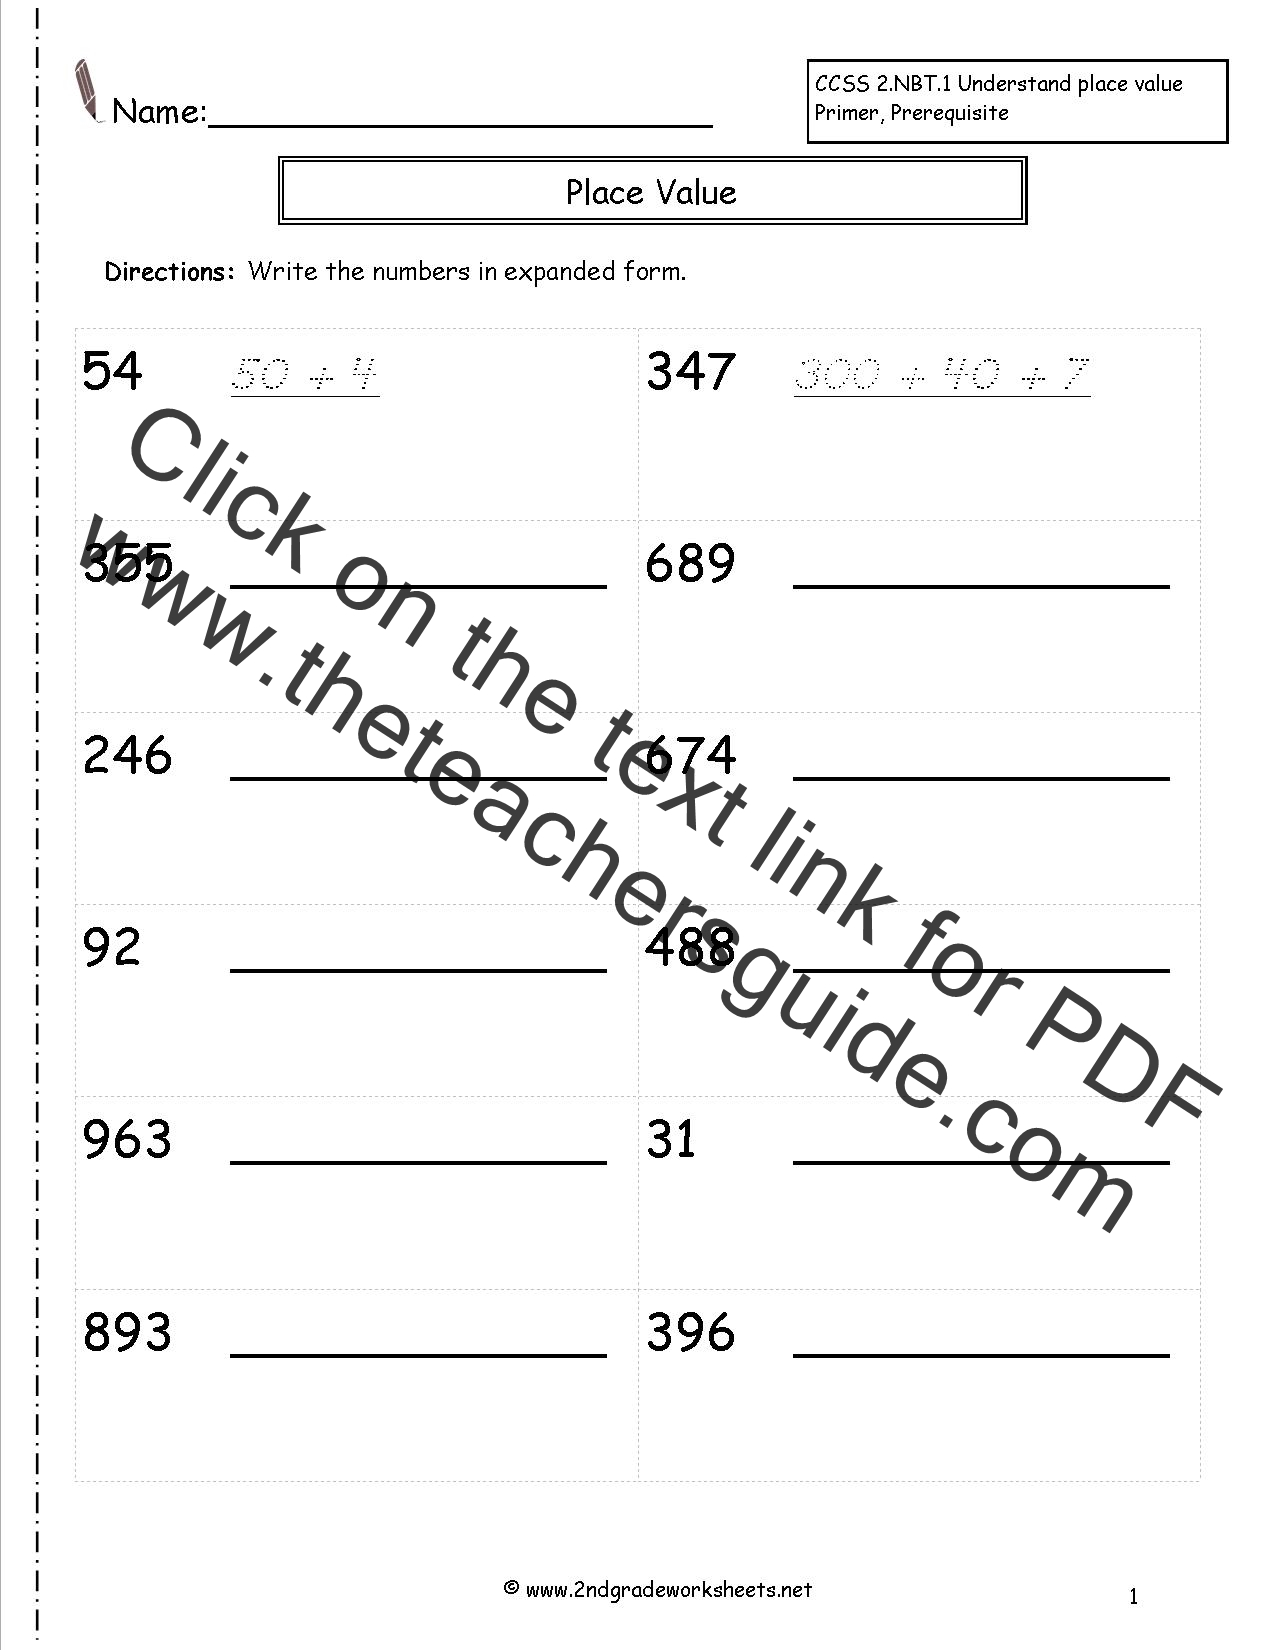 Decimals In Expanded Form Worksheets standard form worksheets – Reading and Writing Decimals Worksheet